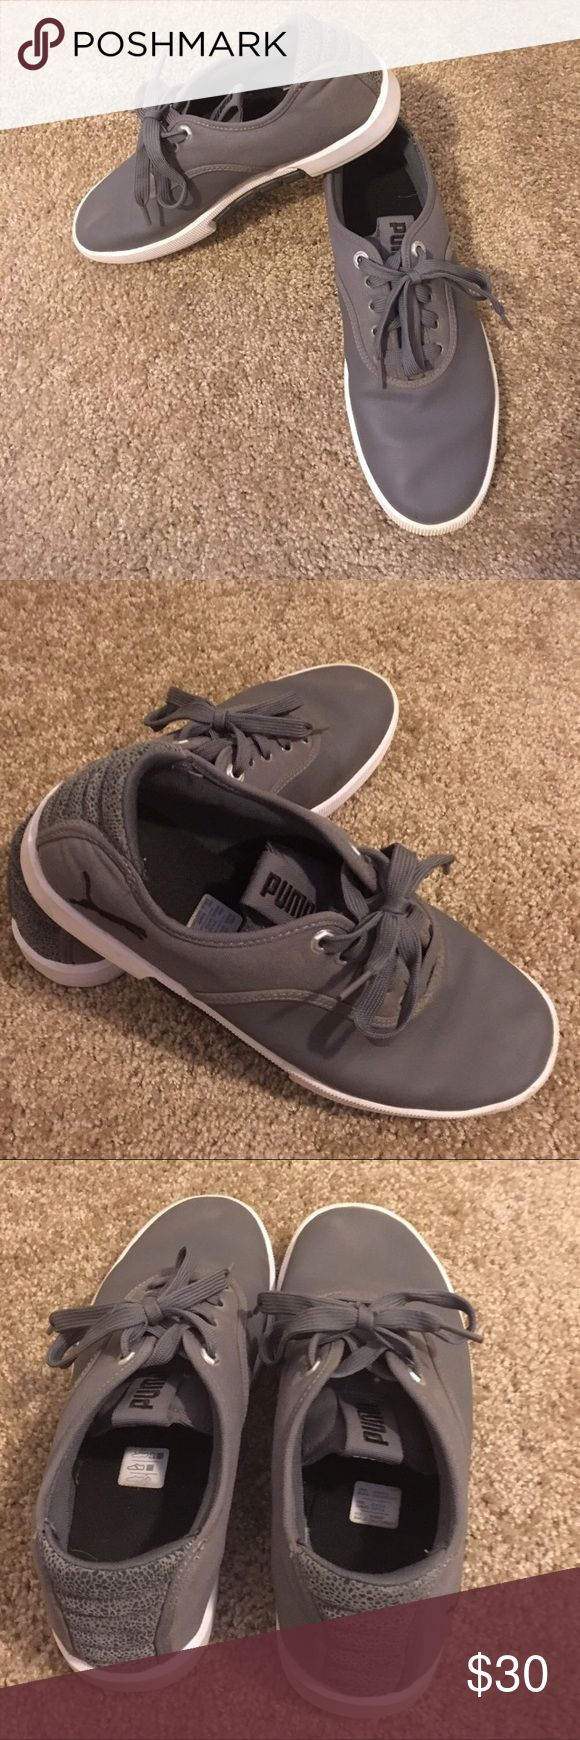 Men's Puma Shoes Sneakers Size 9.5 Men's gray Puma sneakers size 9.5.  One flaw pictured in last photo.  Soil on bottom of Shoes as shown but minimal to no wear.  Good condition. Puma Shoes Sneakers